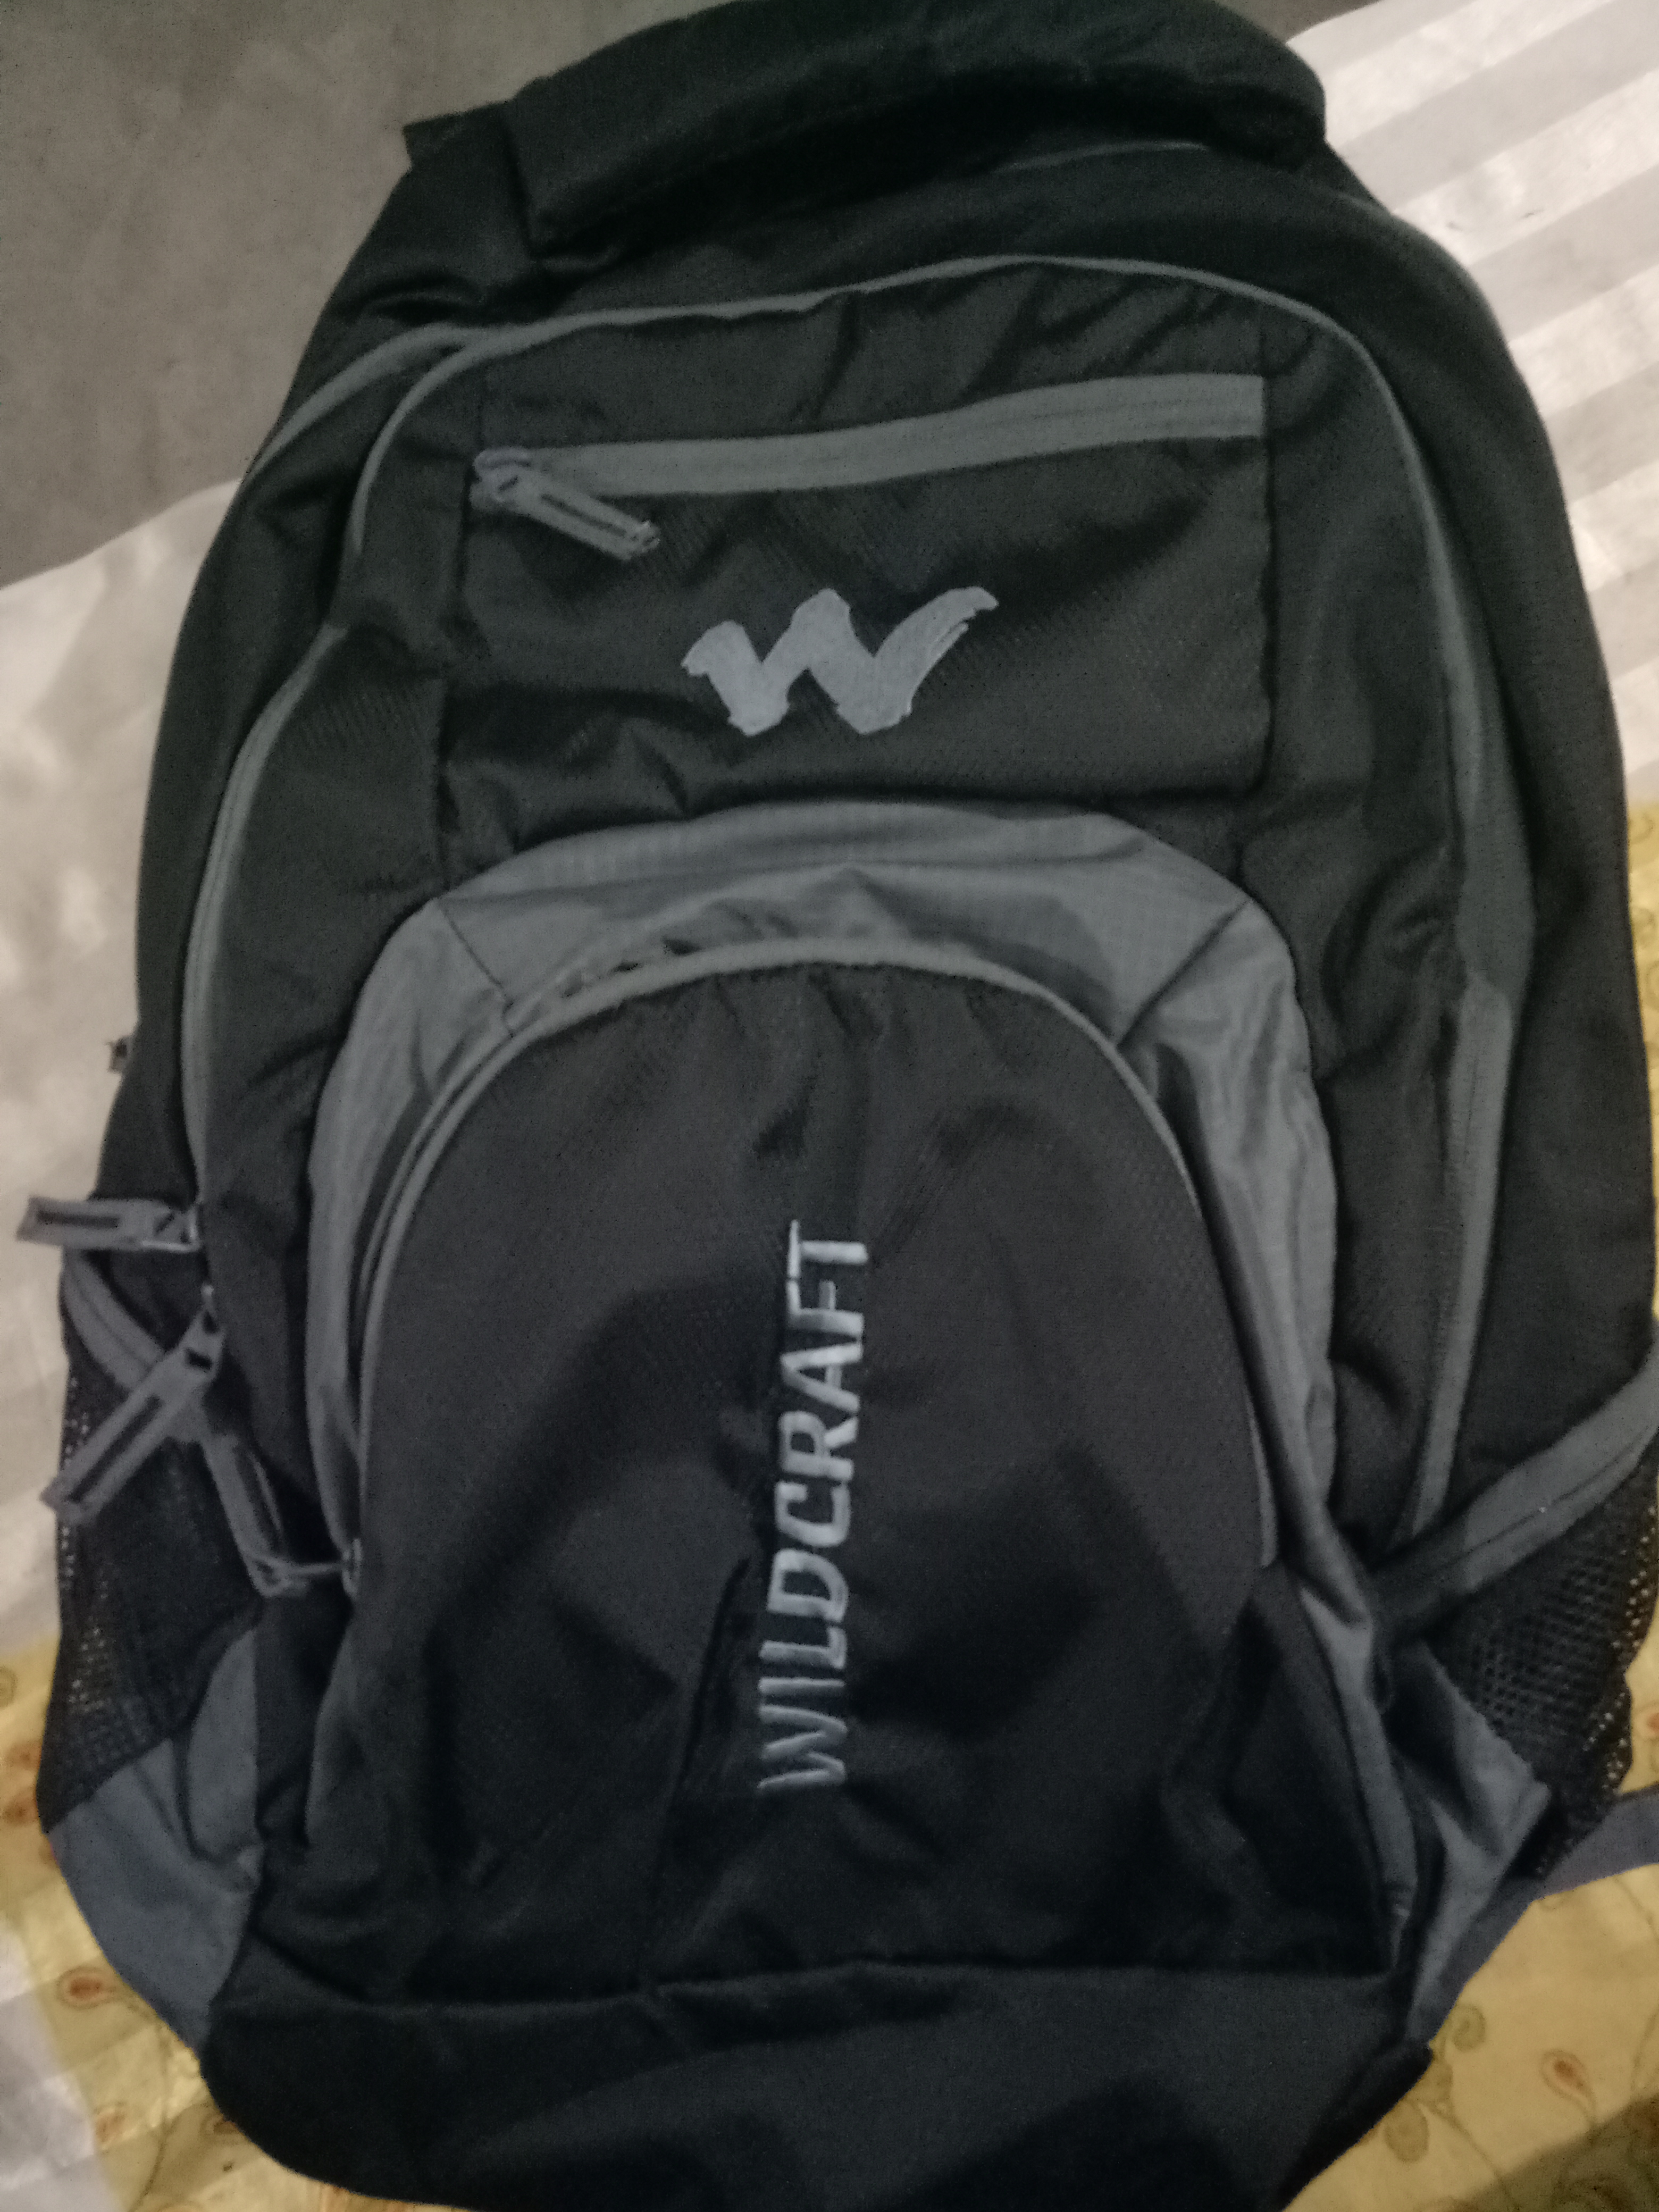 As I Also Use Many Bag Of Wildcraft Skybags Puma American Tourists Bags They All Are Good But Is Very Among These Product